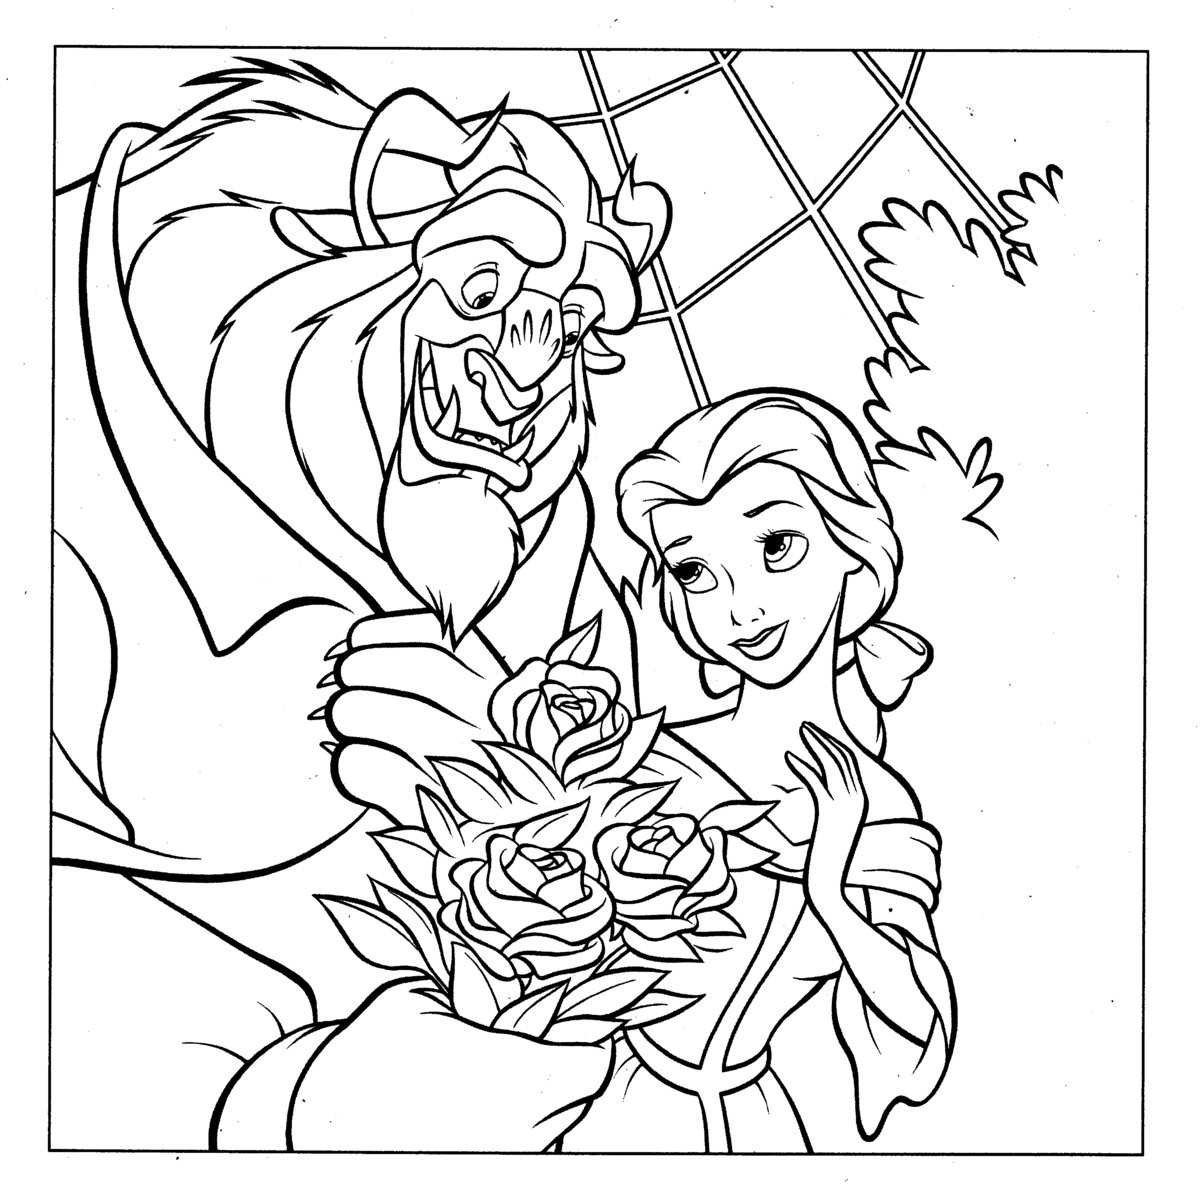 Free coloring pages disney princesses - Coloring Pages Disney Princess Free Free Coloring Pages Disney Princess Disney Villains Coloring Pages For